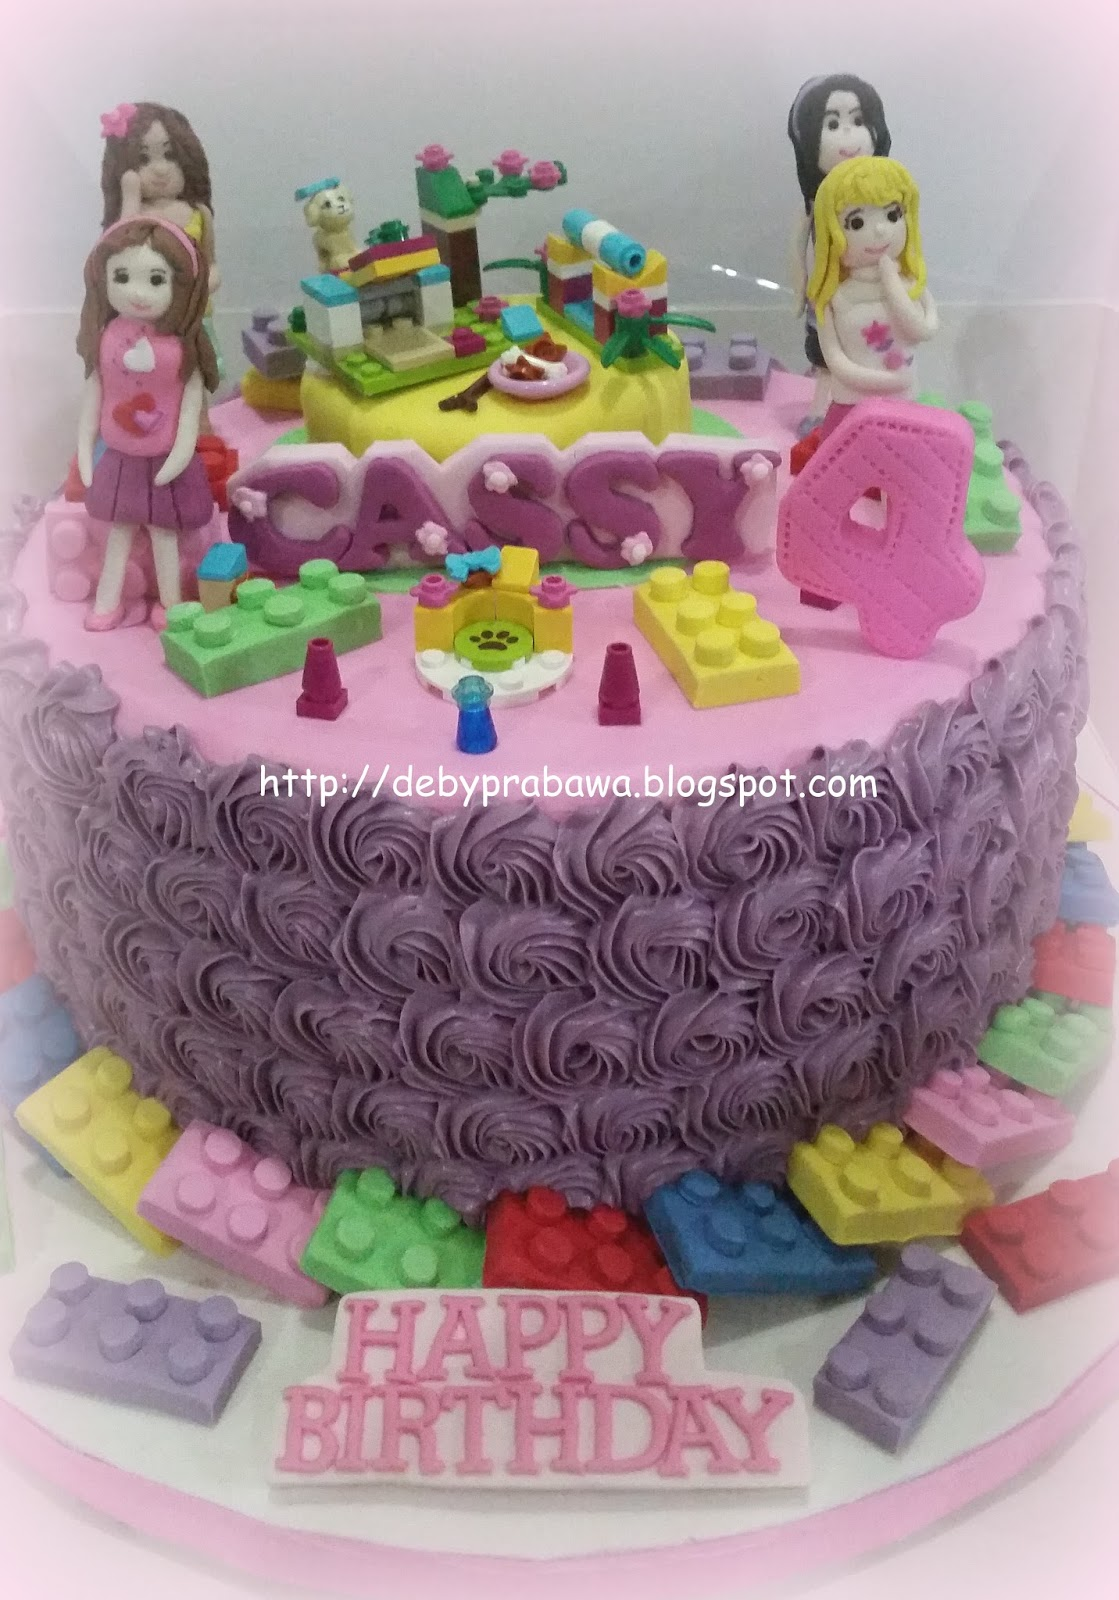 Butterfly Cake Lego Friends Cake